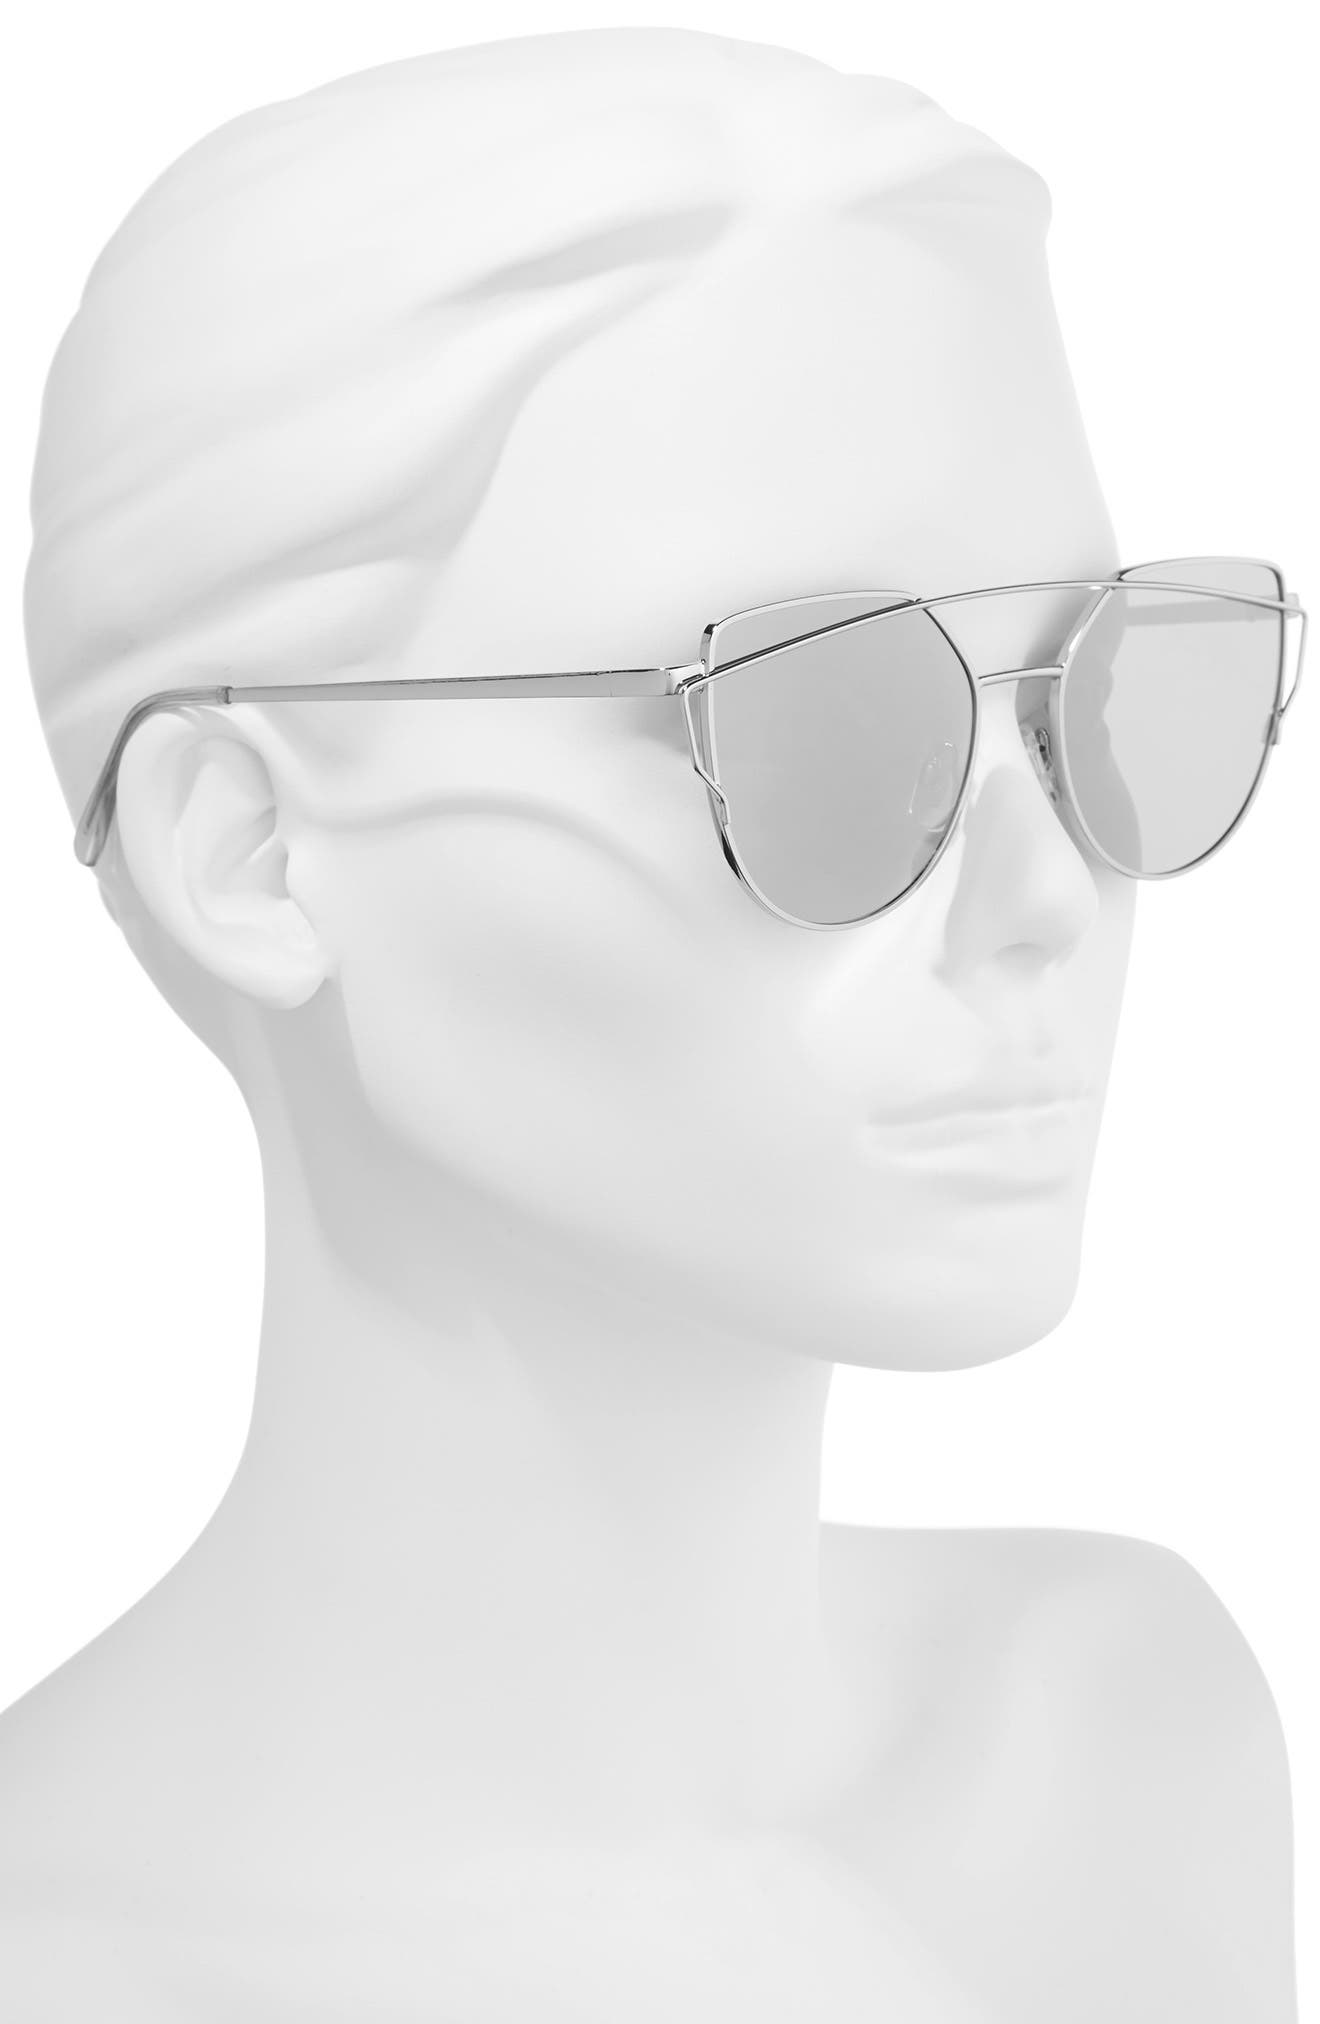 51mm Thin Brow Angular Aviator Sunglasses,                             Alternate thumbnail 9, color,